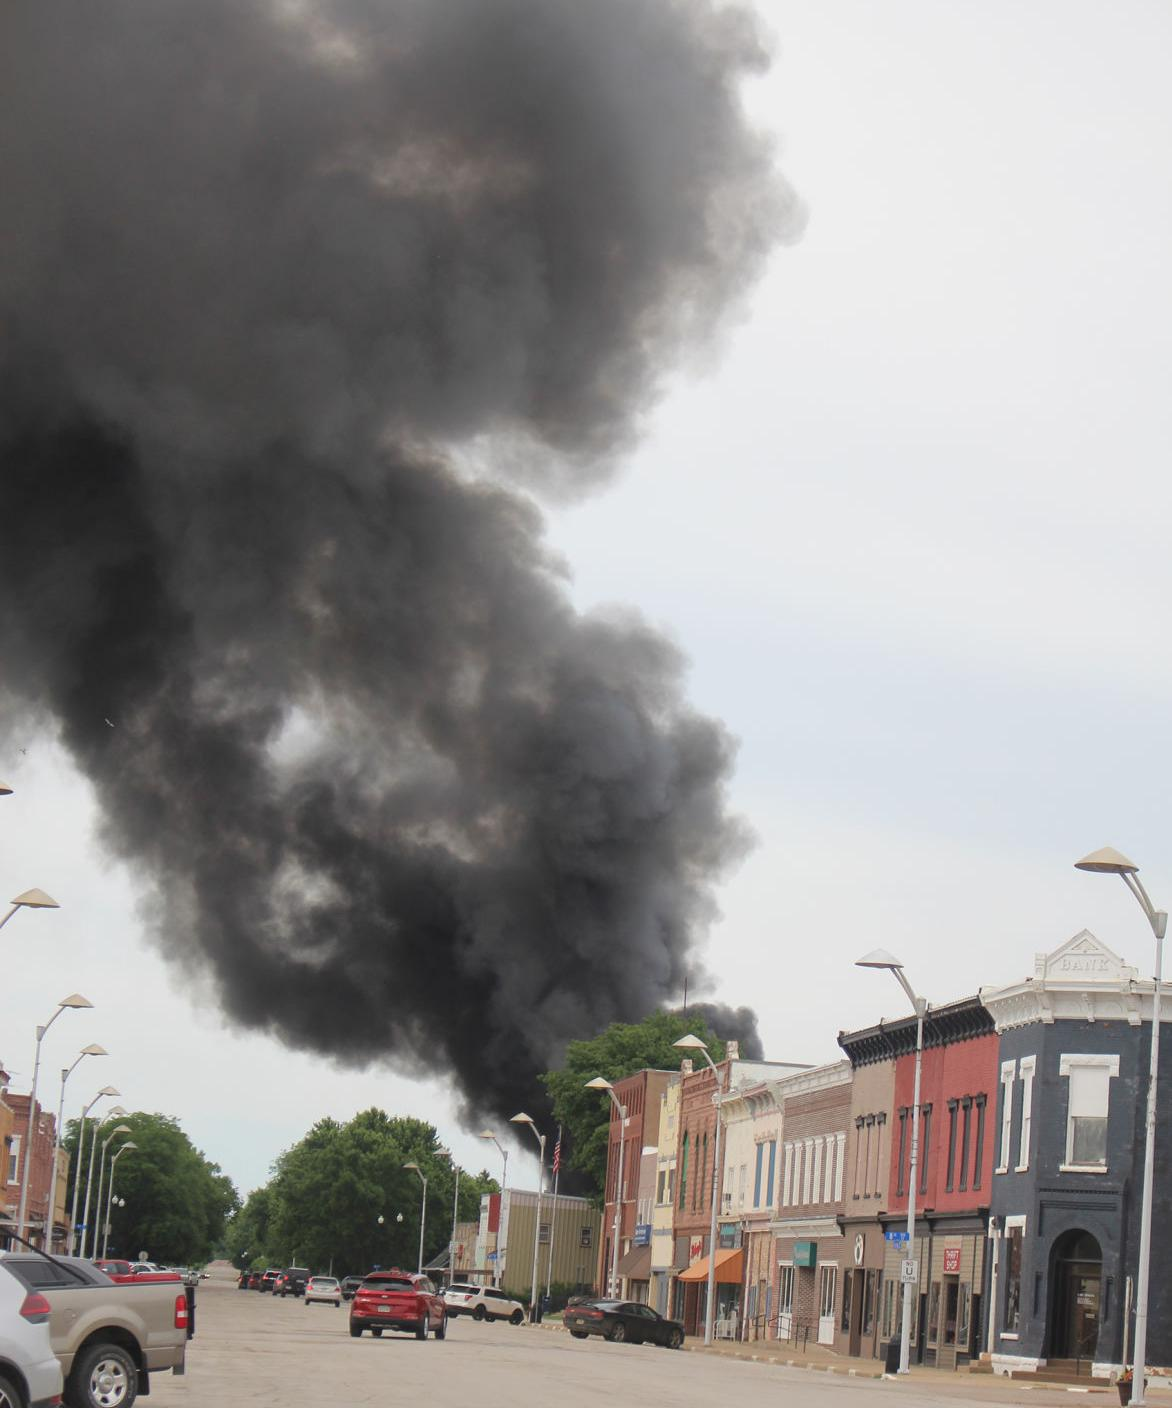 Downtown Hawarden rolling with smoke